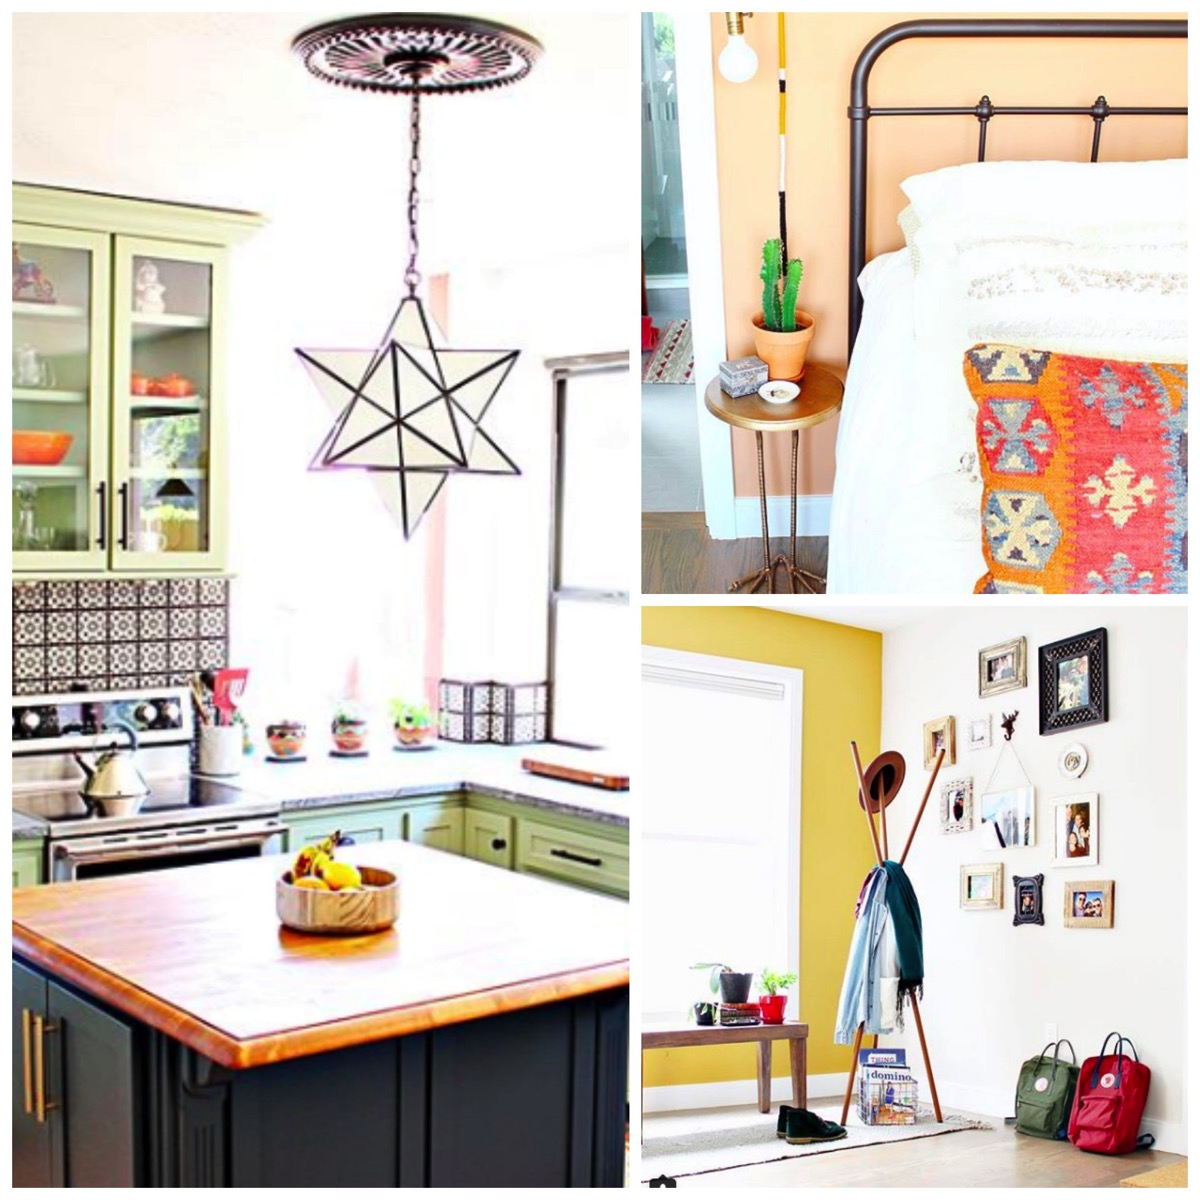 Home full of texture and colorful accents